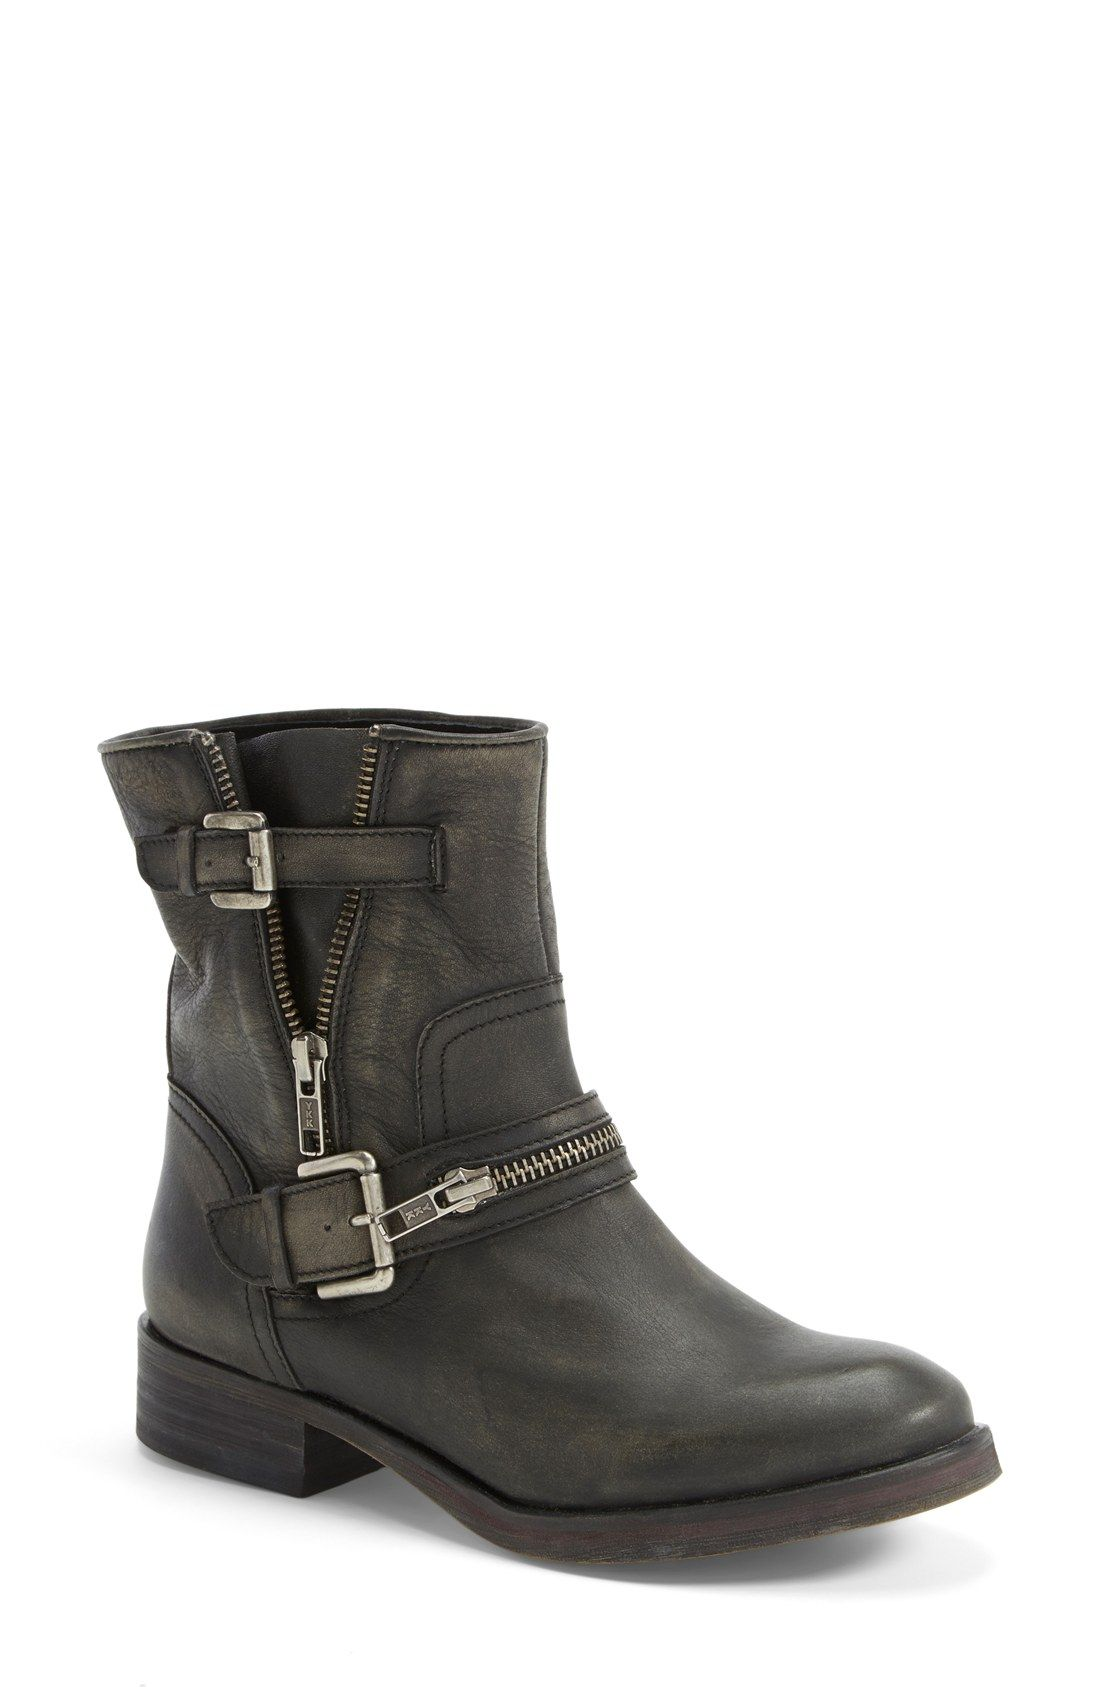 These chunky leather boots are so versatile! Wear them with boyfriend jeans  and a graphic